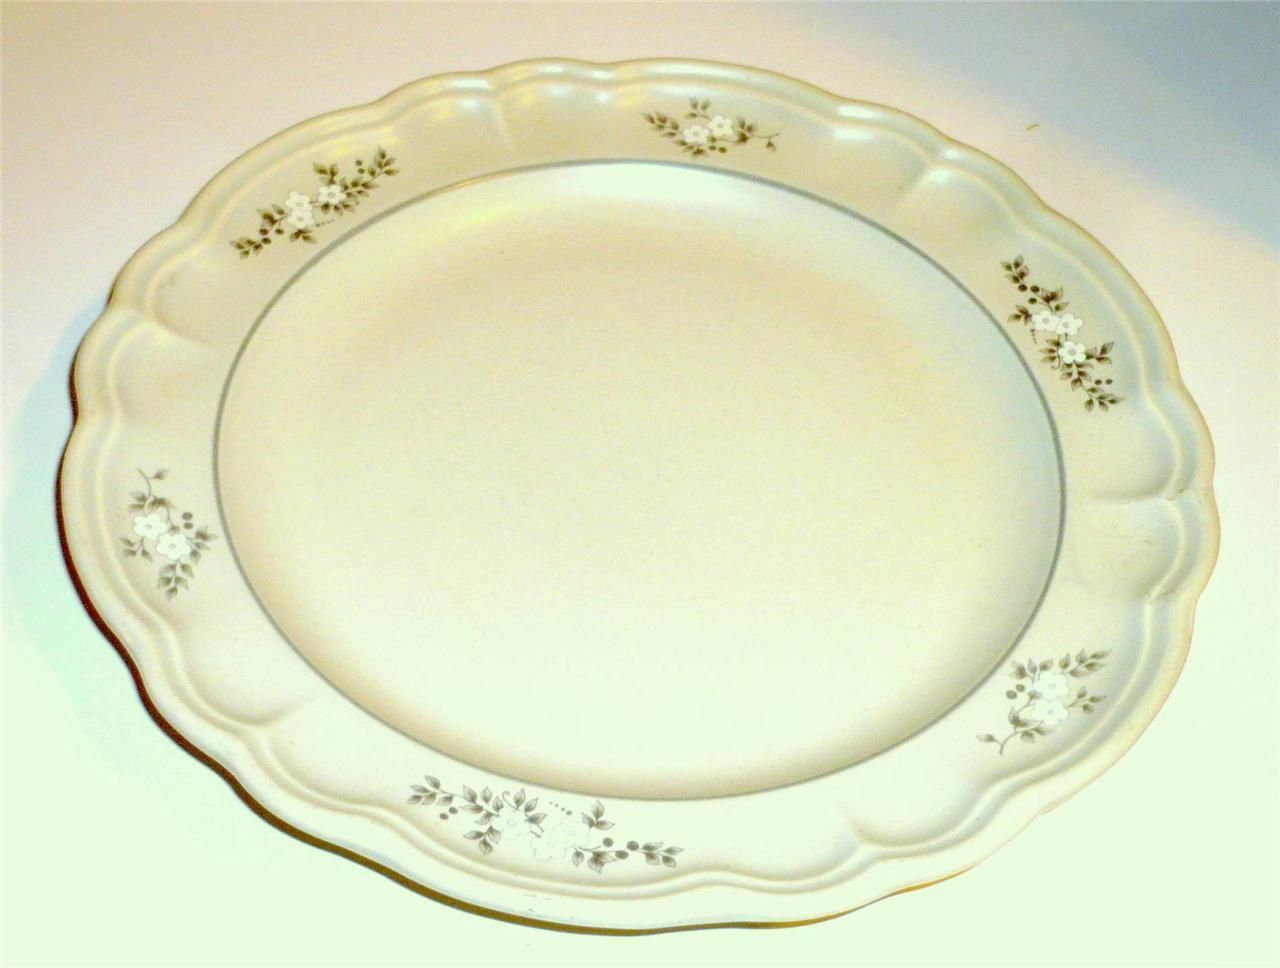 pfaltzgraff replacement dinner plate excellent only 1 is this your